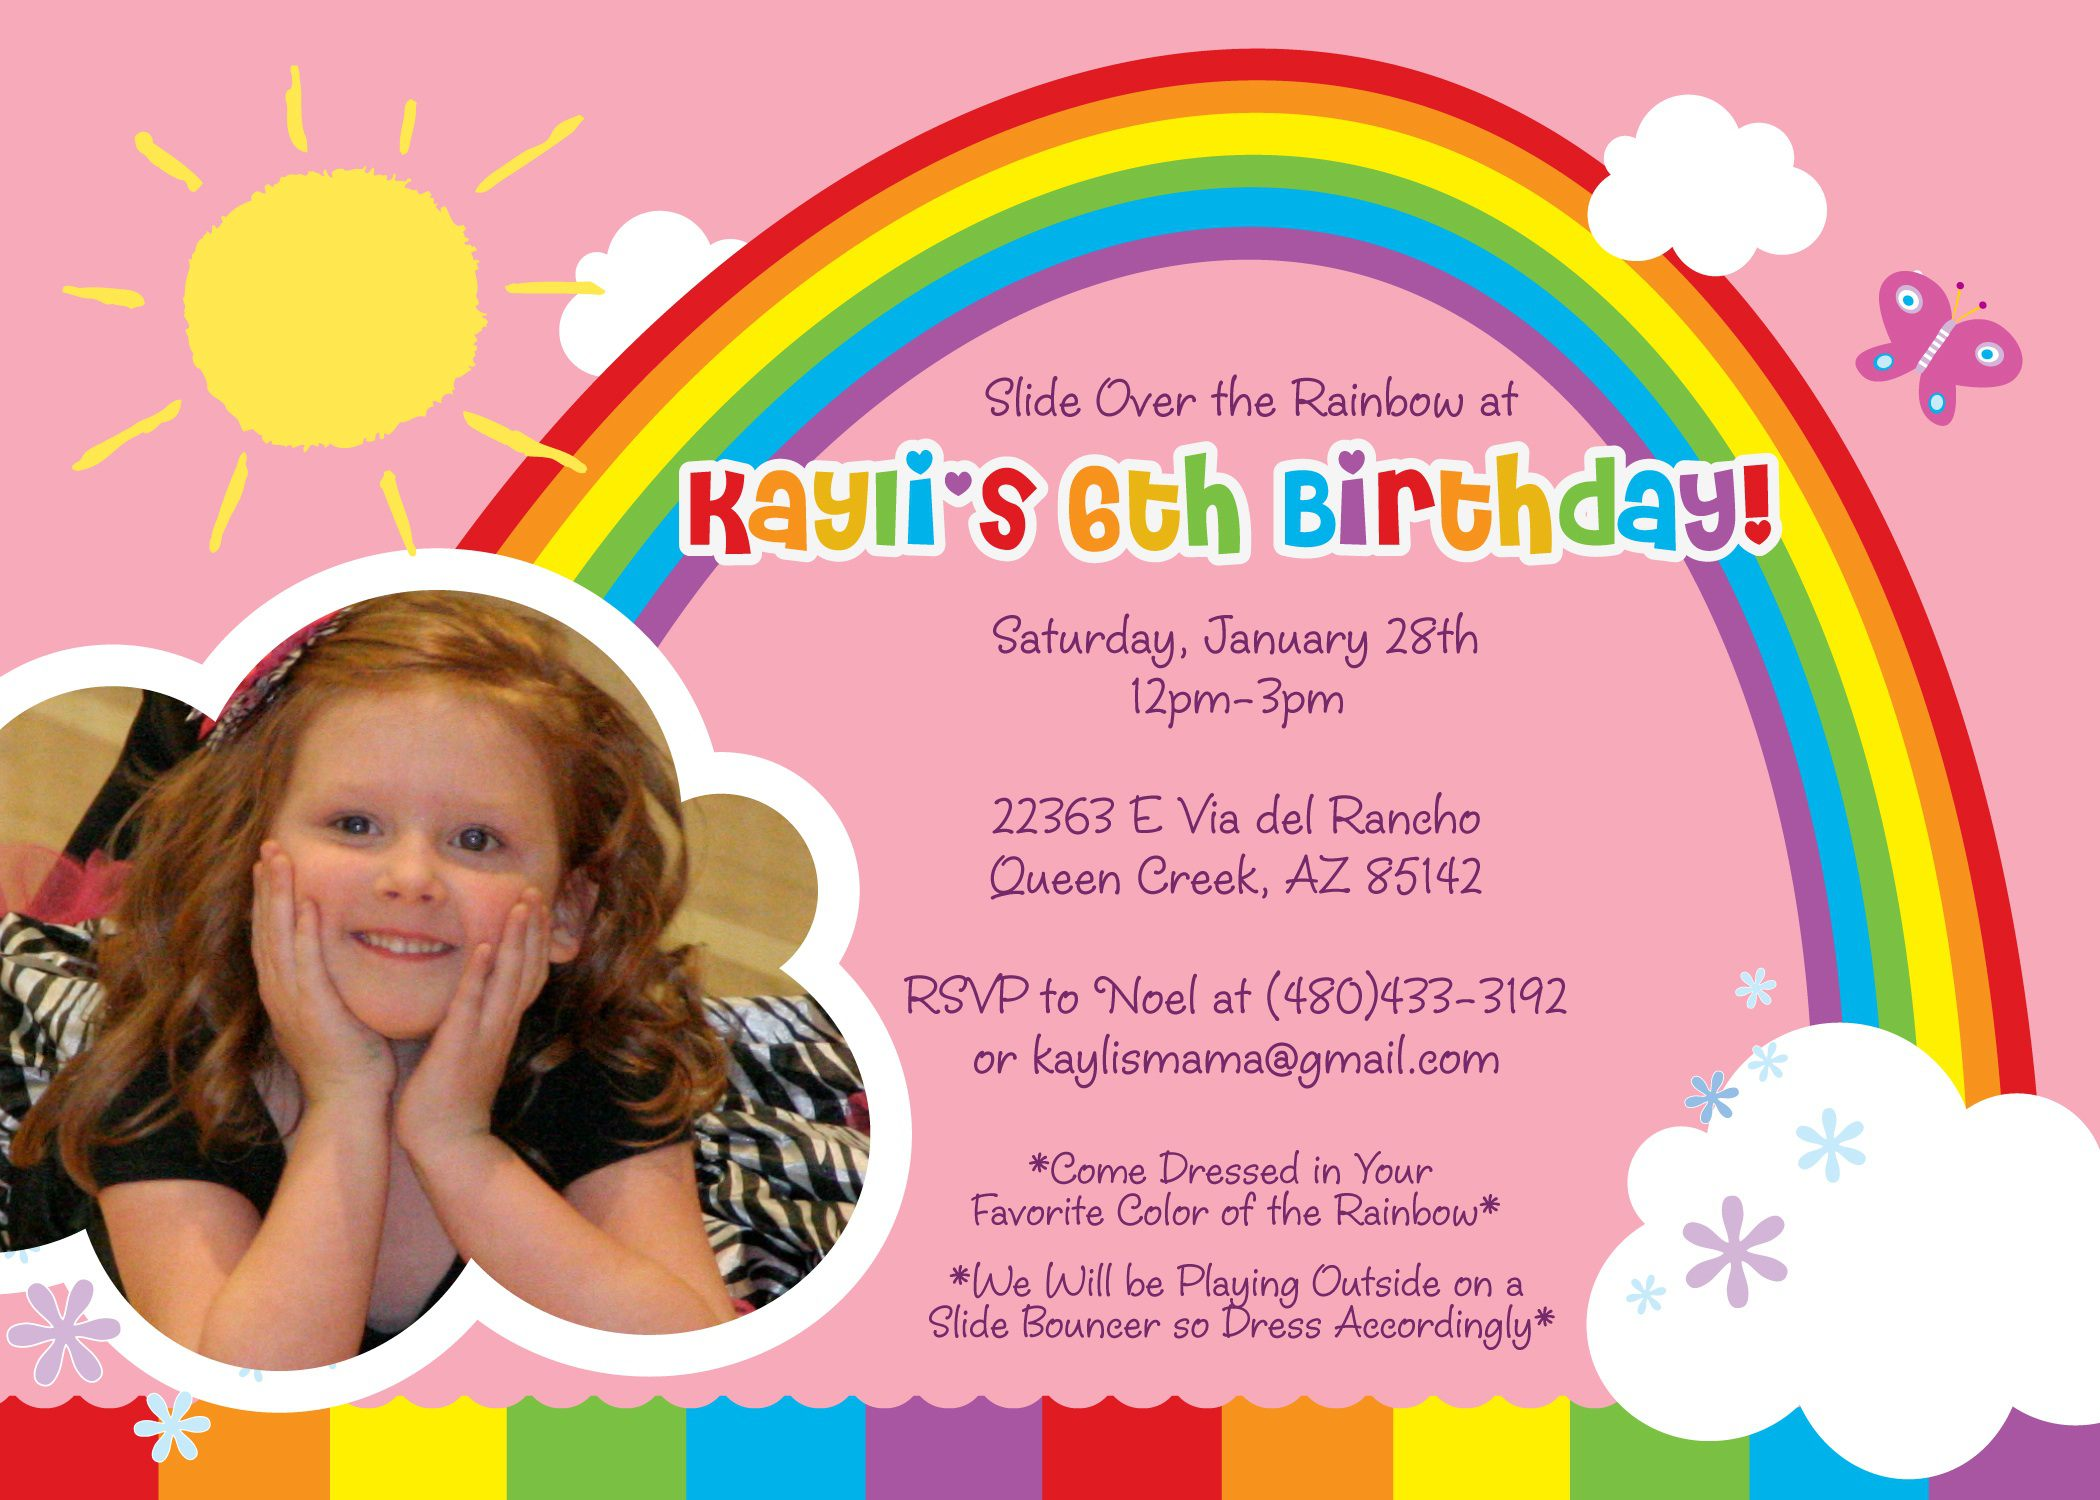 birthday invitation cards designs sample ; Birthday-Invitation-Card-Sample-Printable-and-get-inspiration-to-create-the-birthday-Card-design-of-your-dreams-20